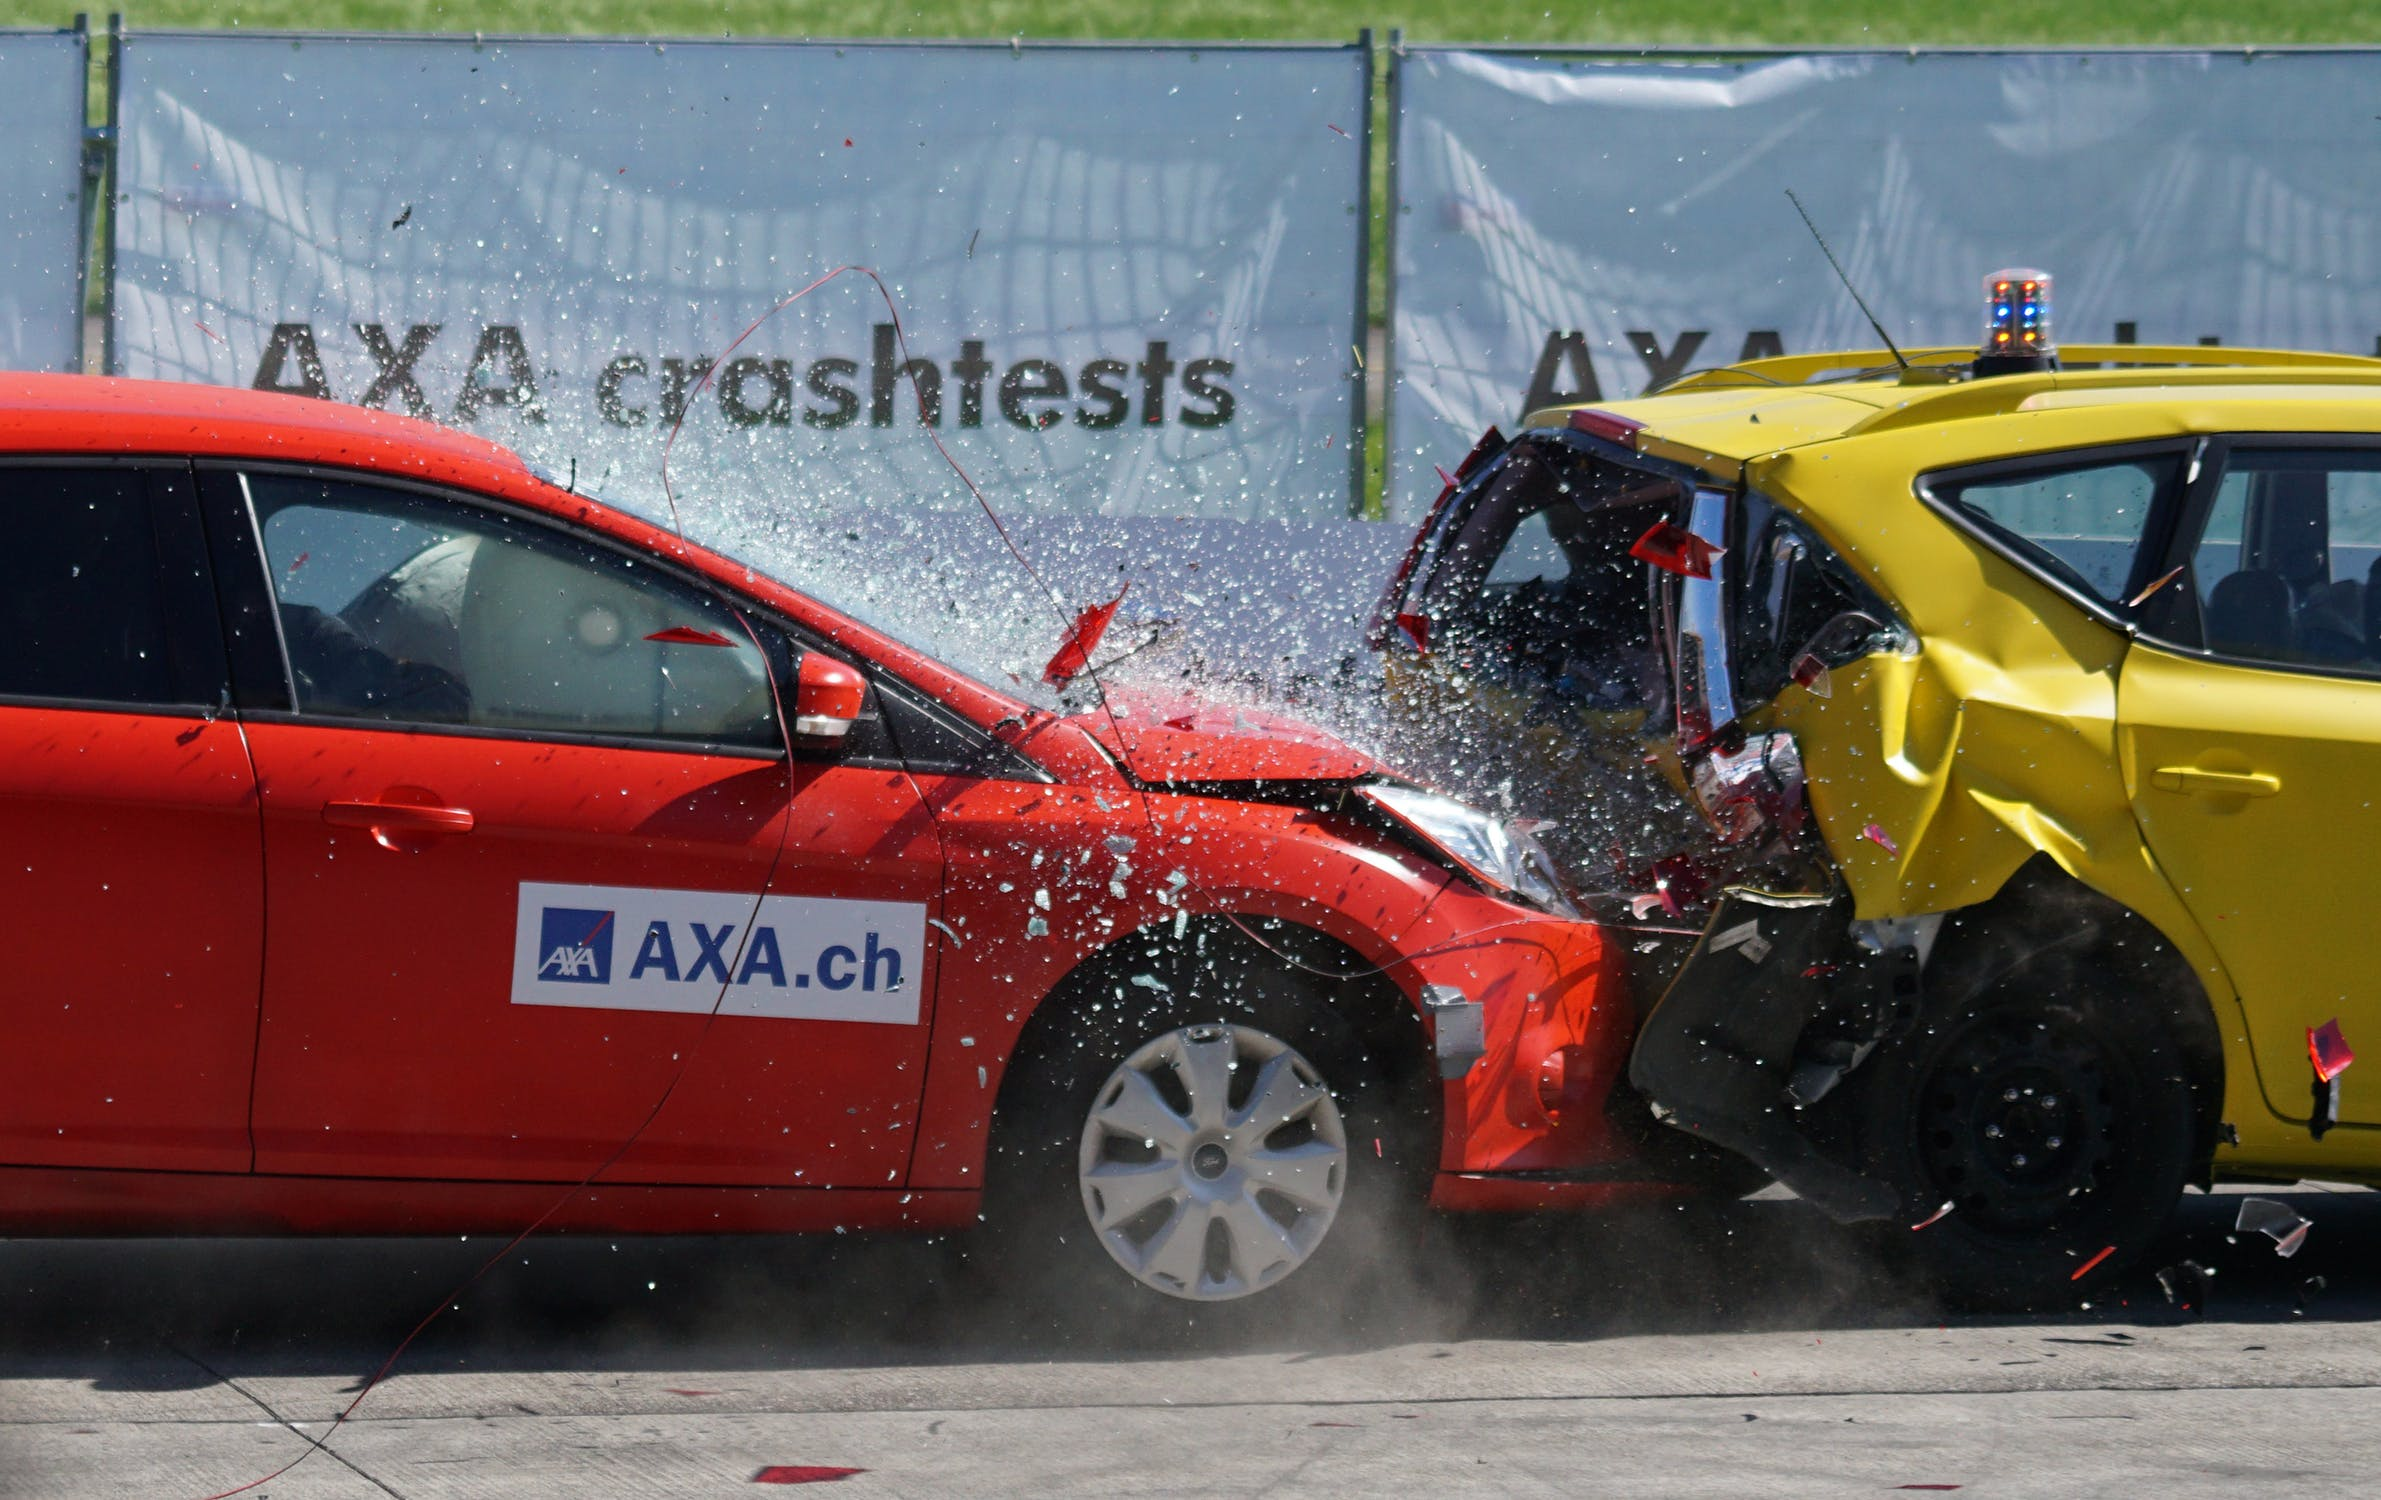 Whether are the reasons for you to drive, it's mandatory to have an car insurance